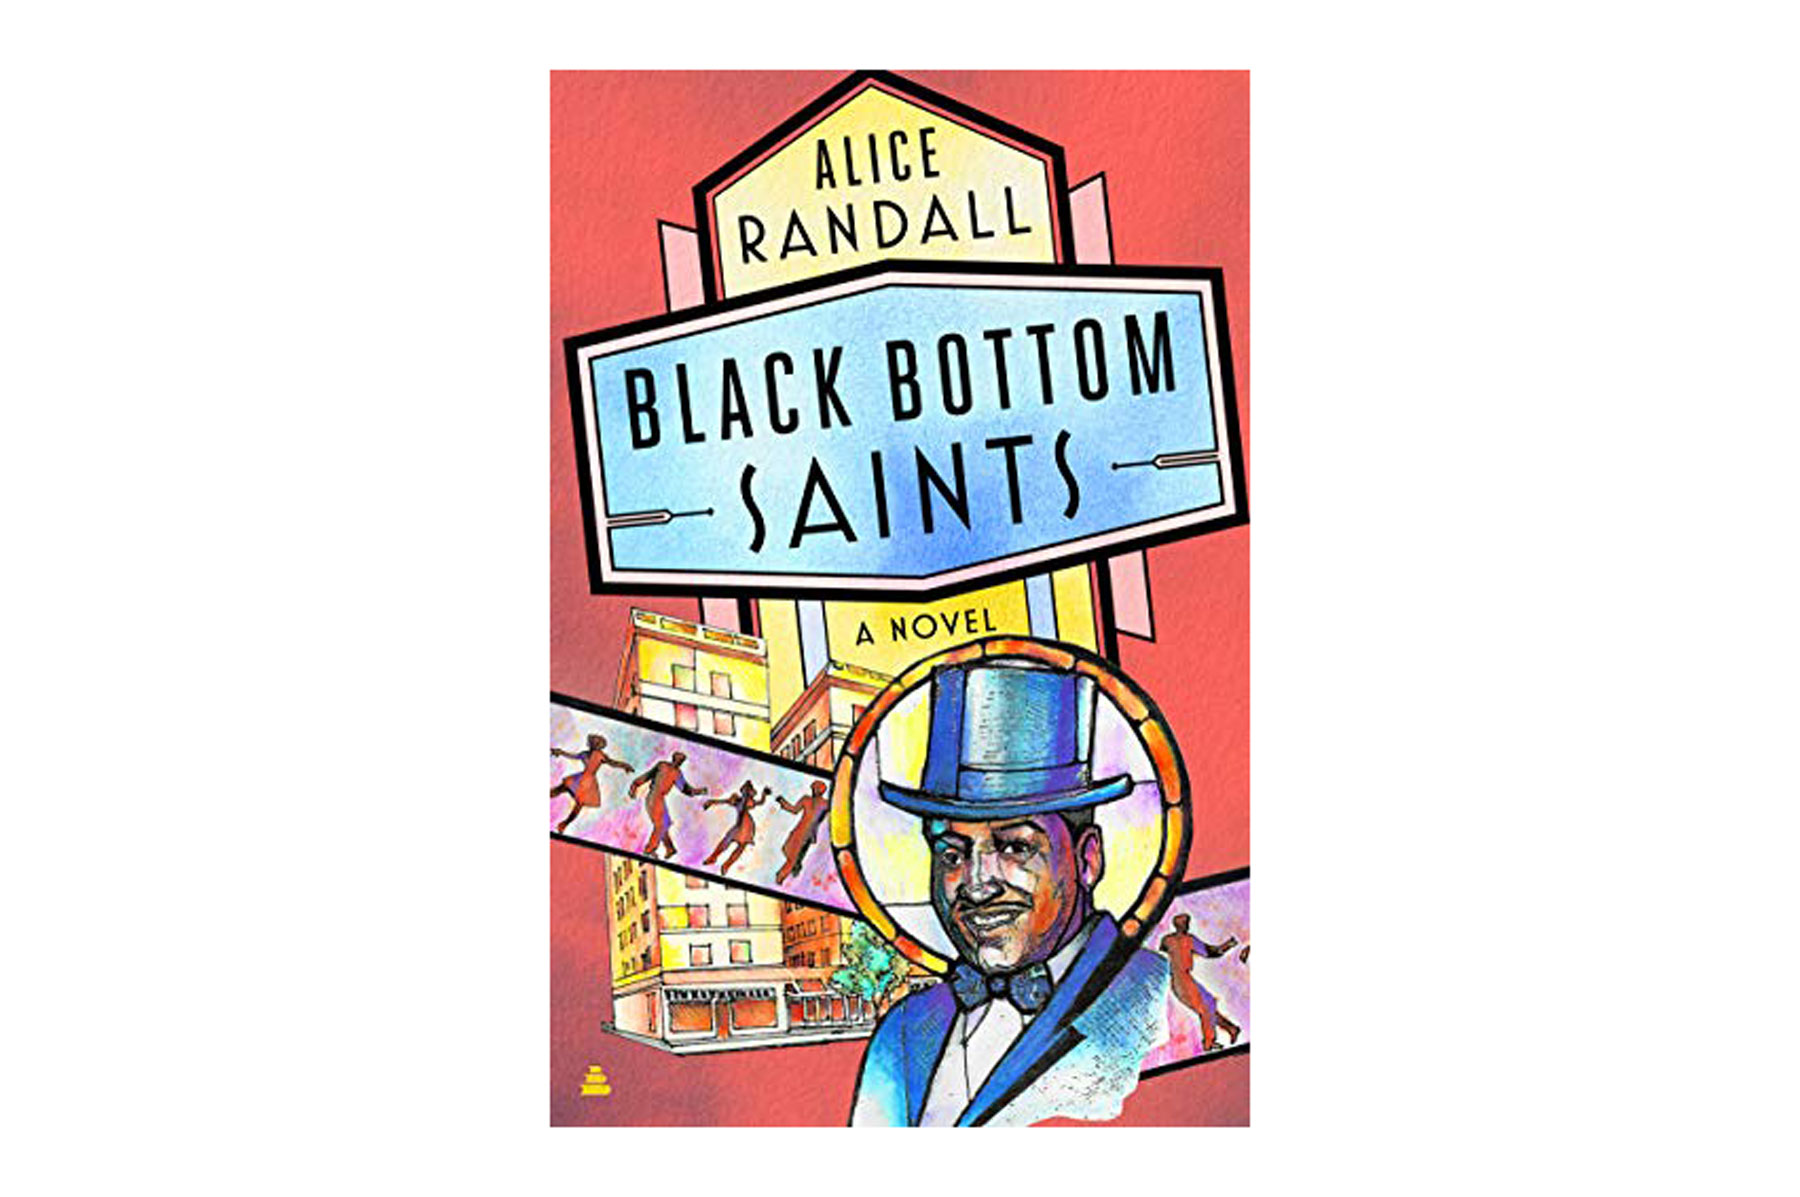 Black Bottom Saints book